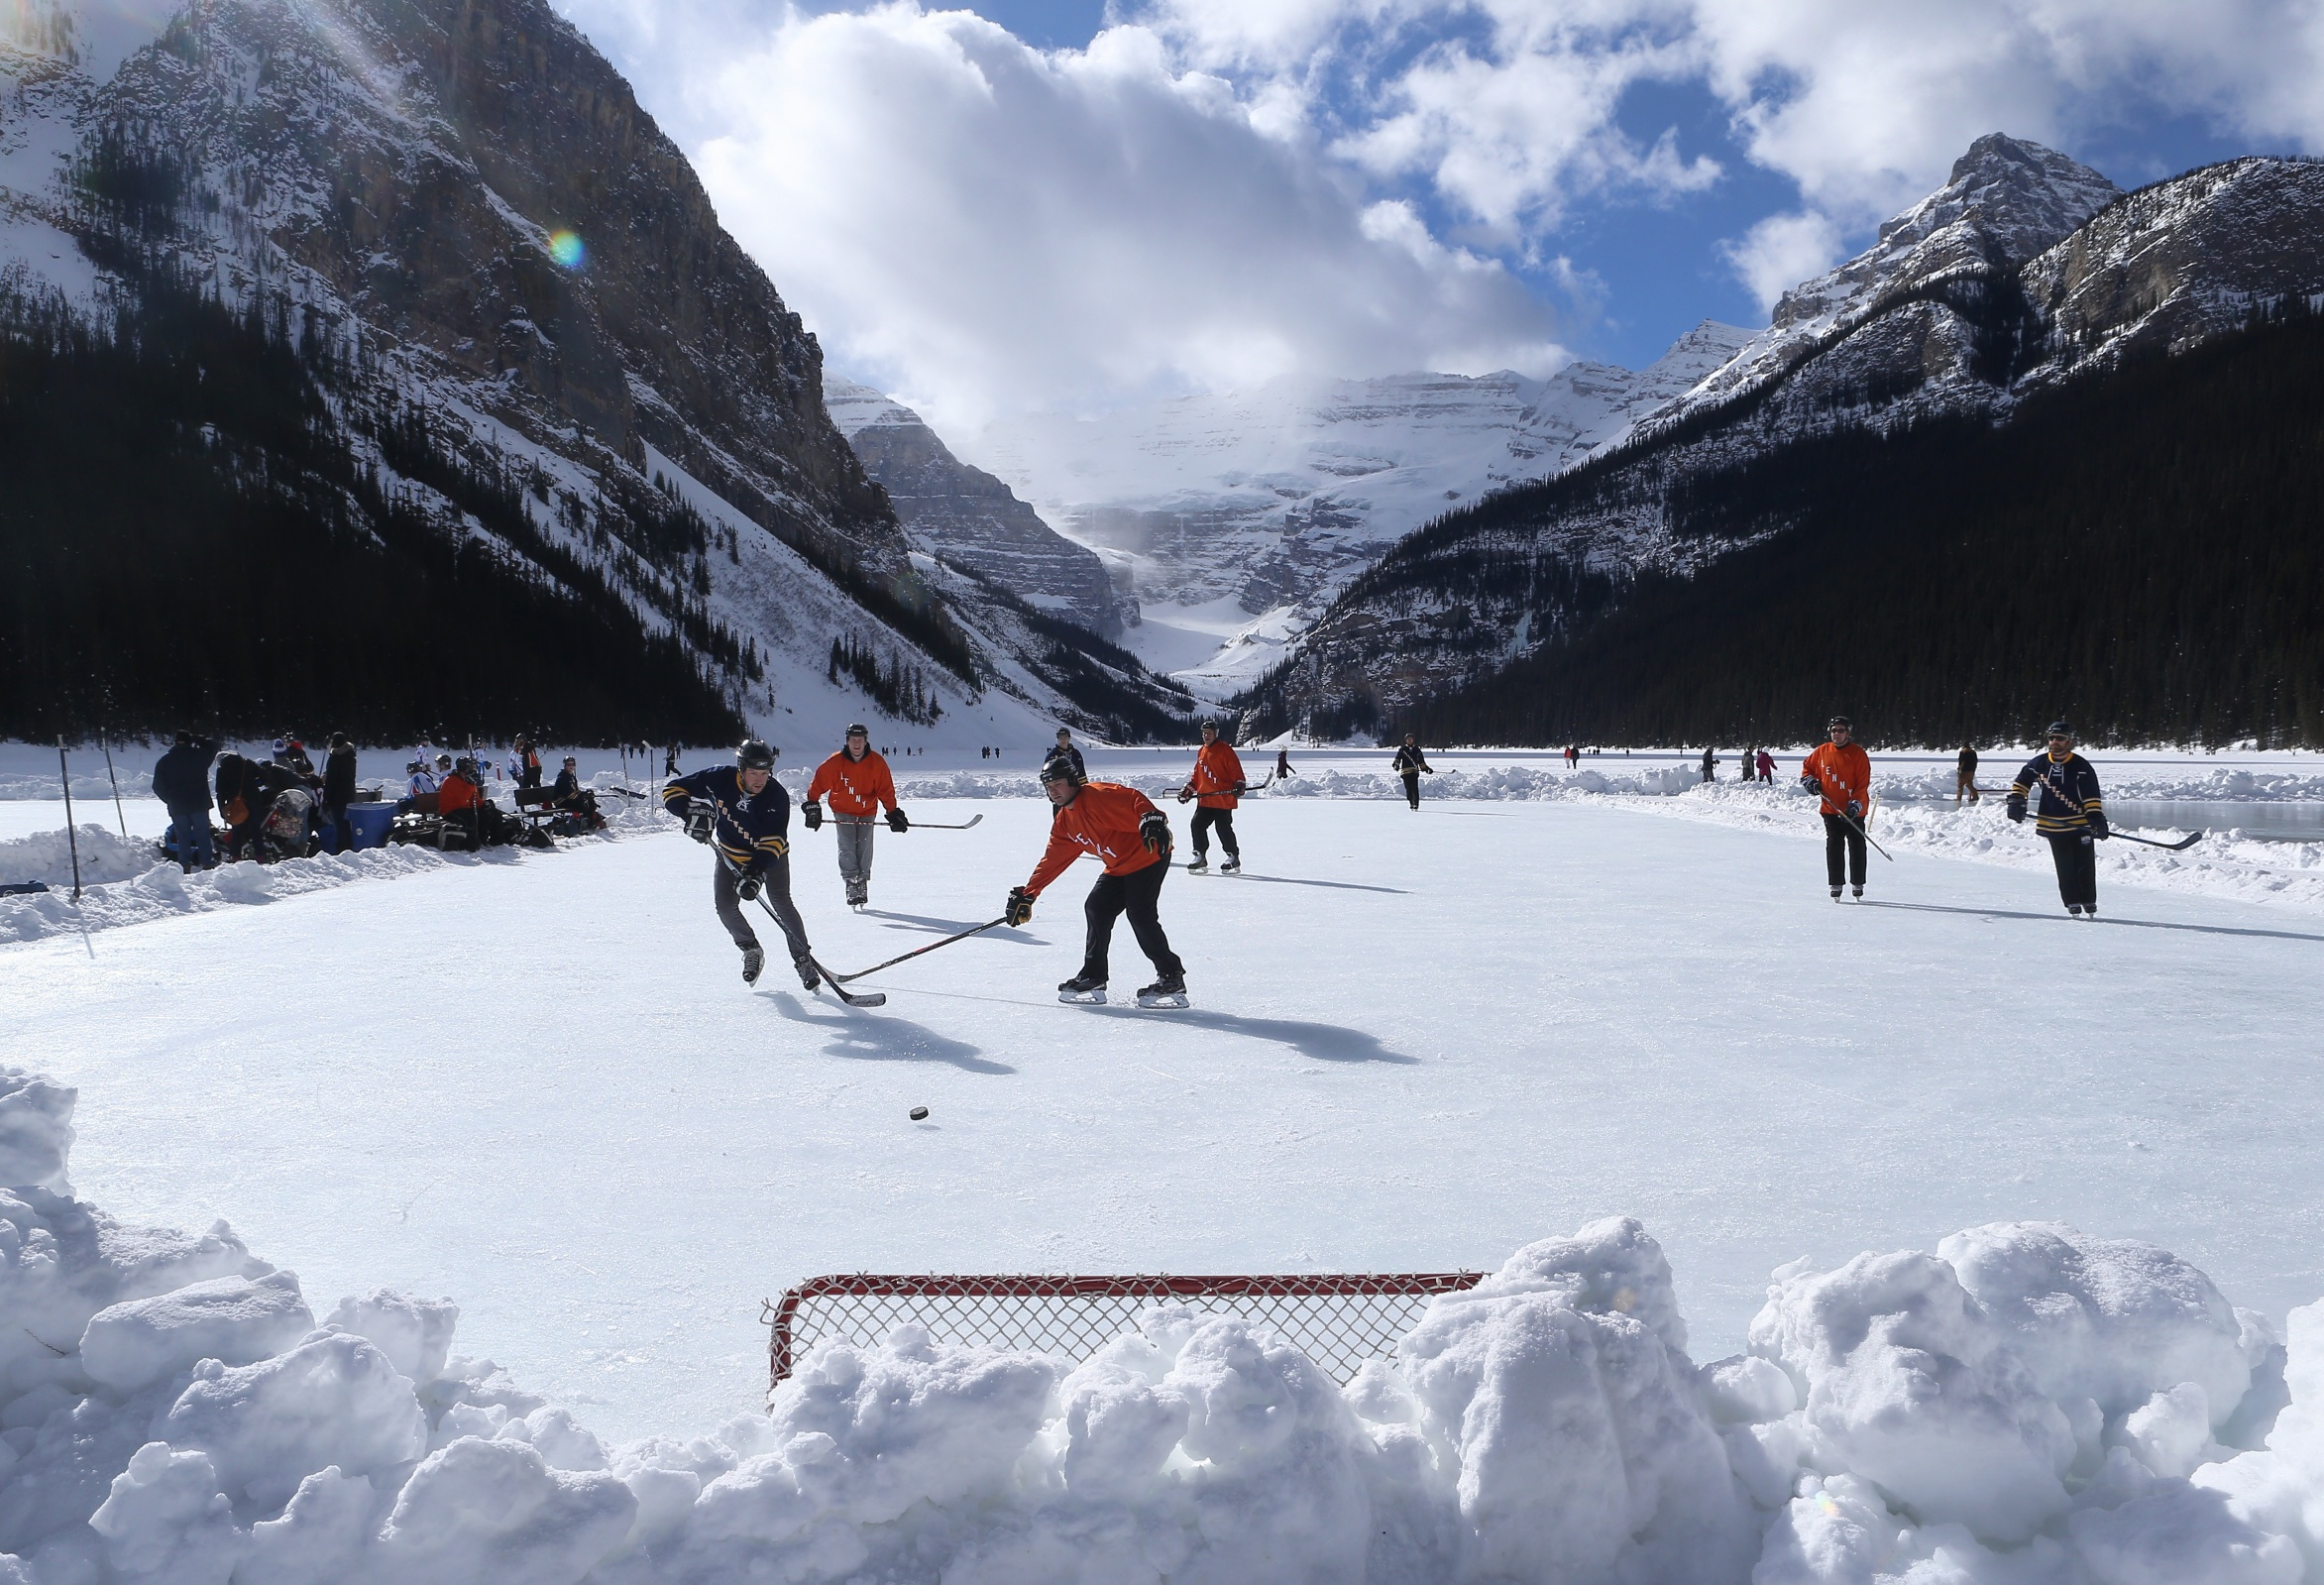 Outdoor shinny hockey action during the 7th Annual Lake Louise Pond Hockey Classic on the frozen surface of Lake Louise on February 27, 2016 in Lake Louise, Alberta, Canada.